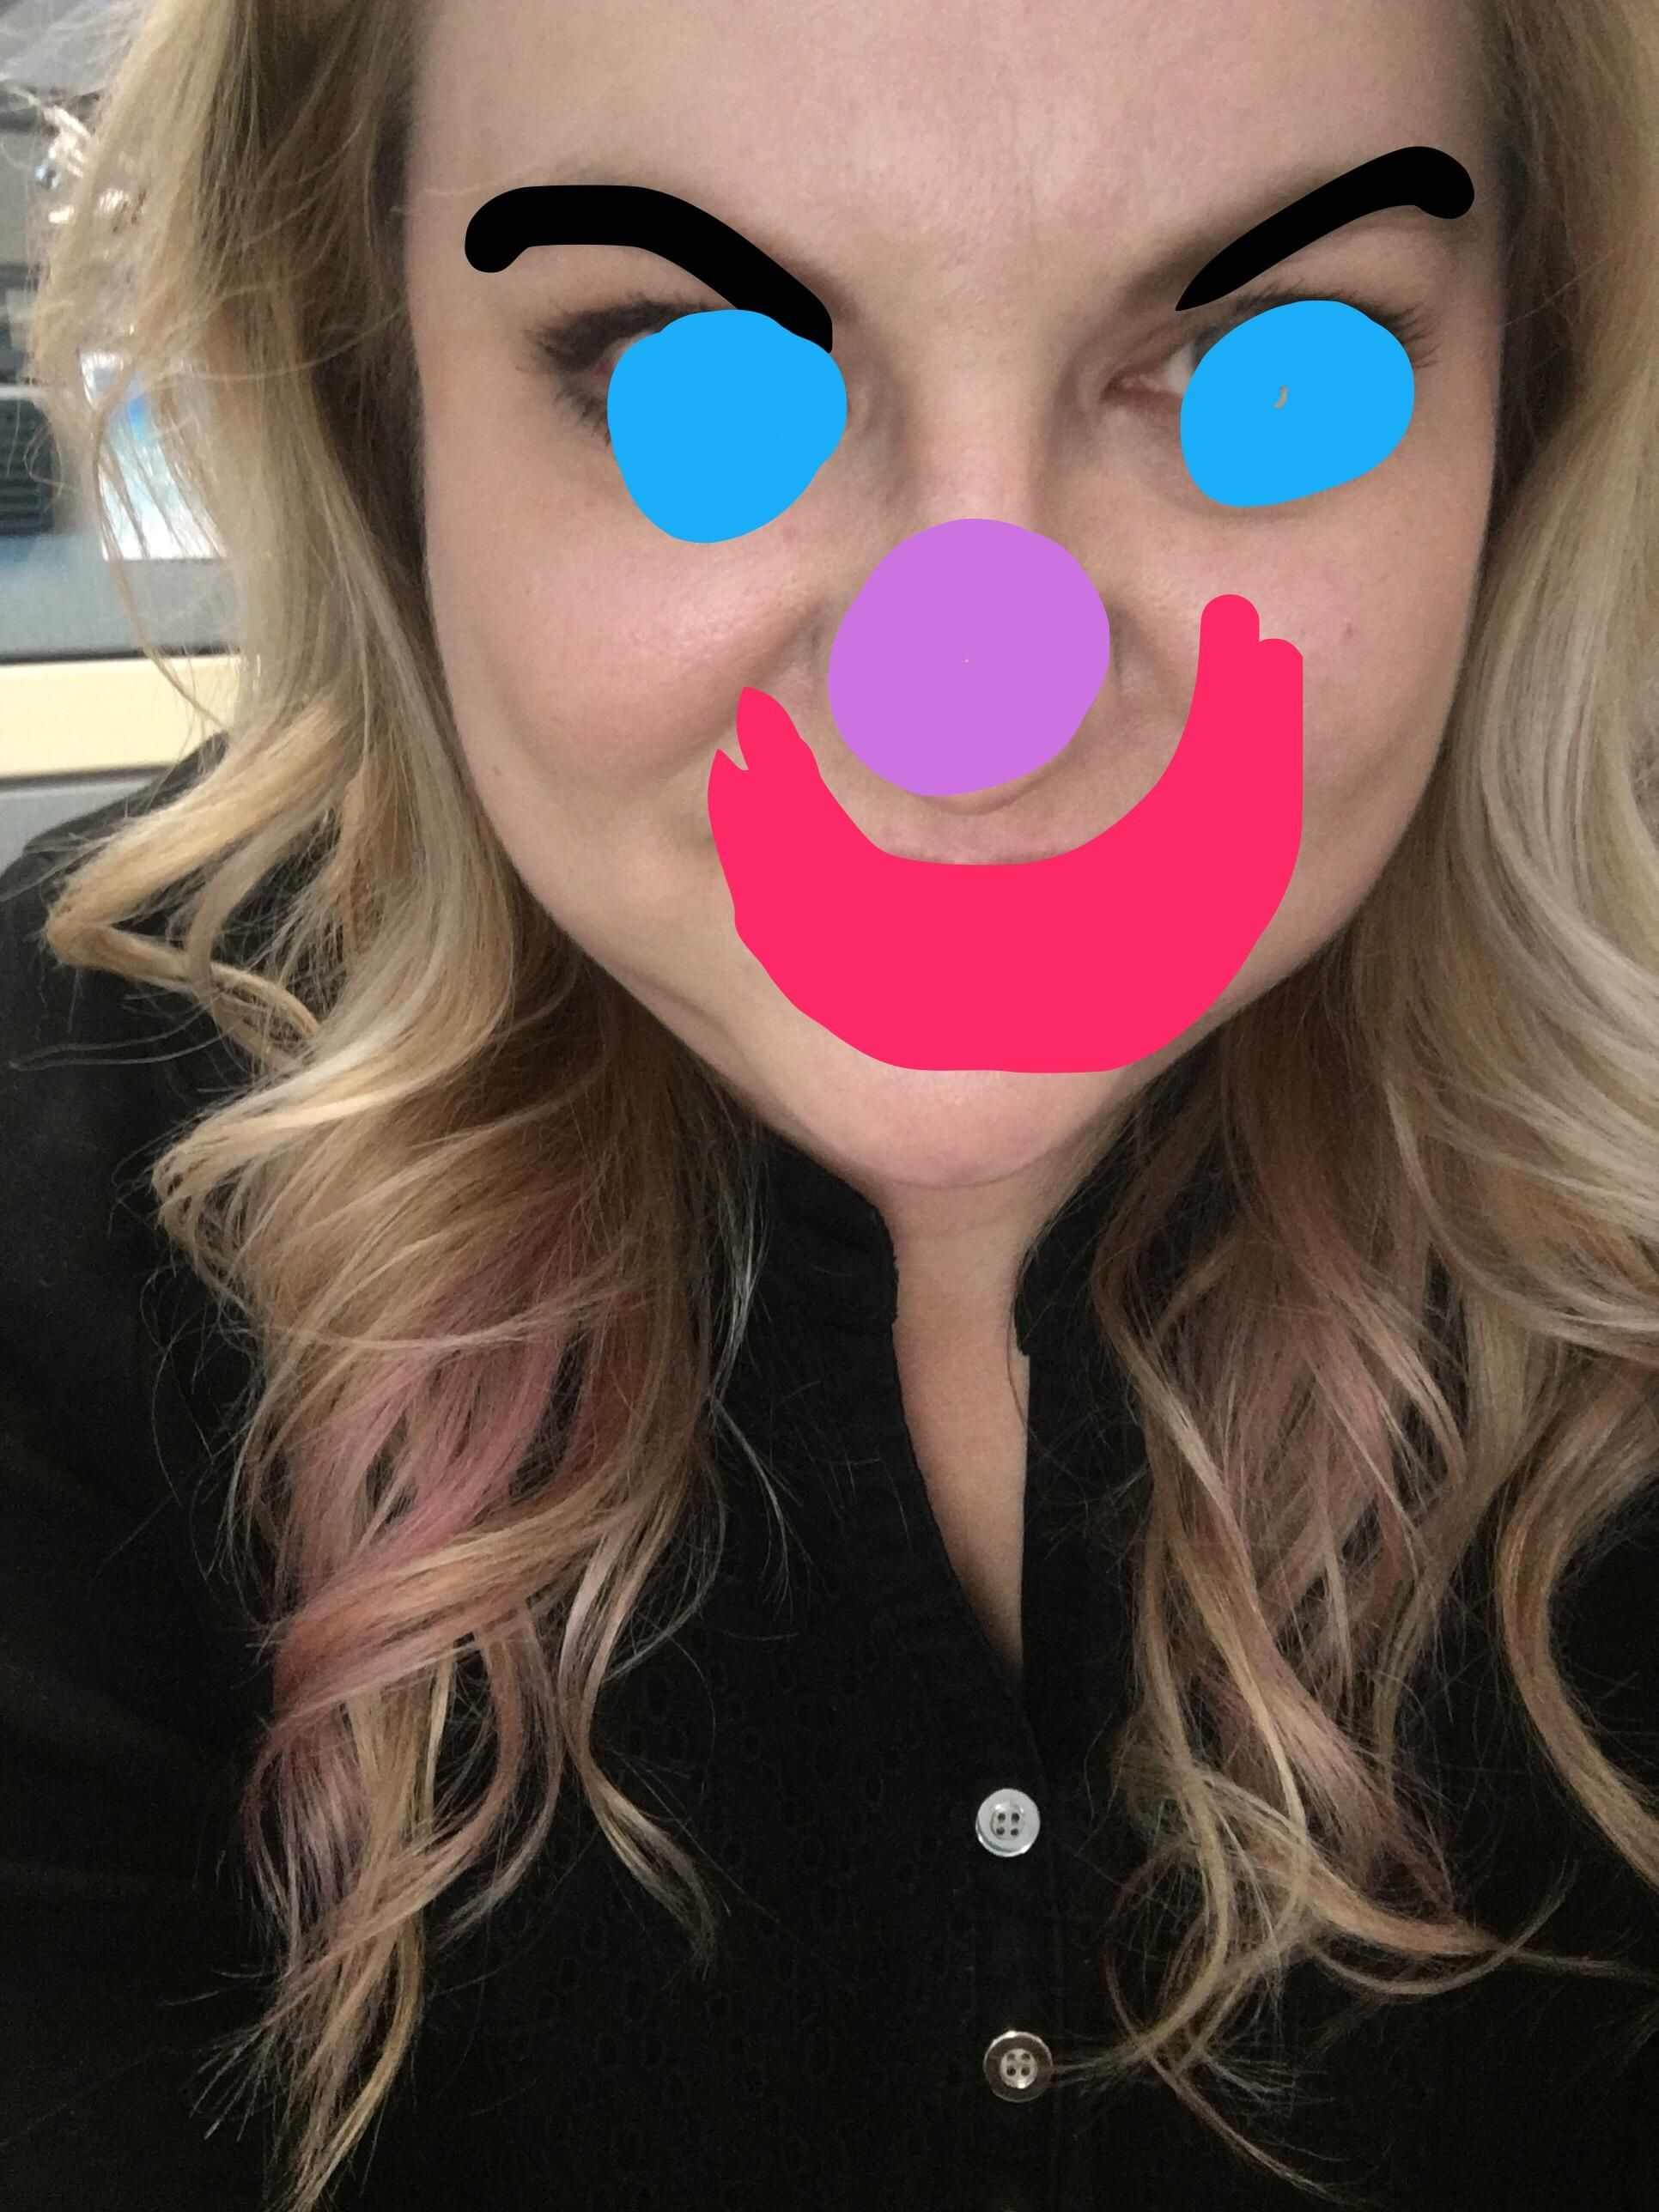 Light orchid and peach peekaboos that no one at work questions. I'm obviously a master of disguise here.